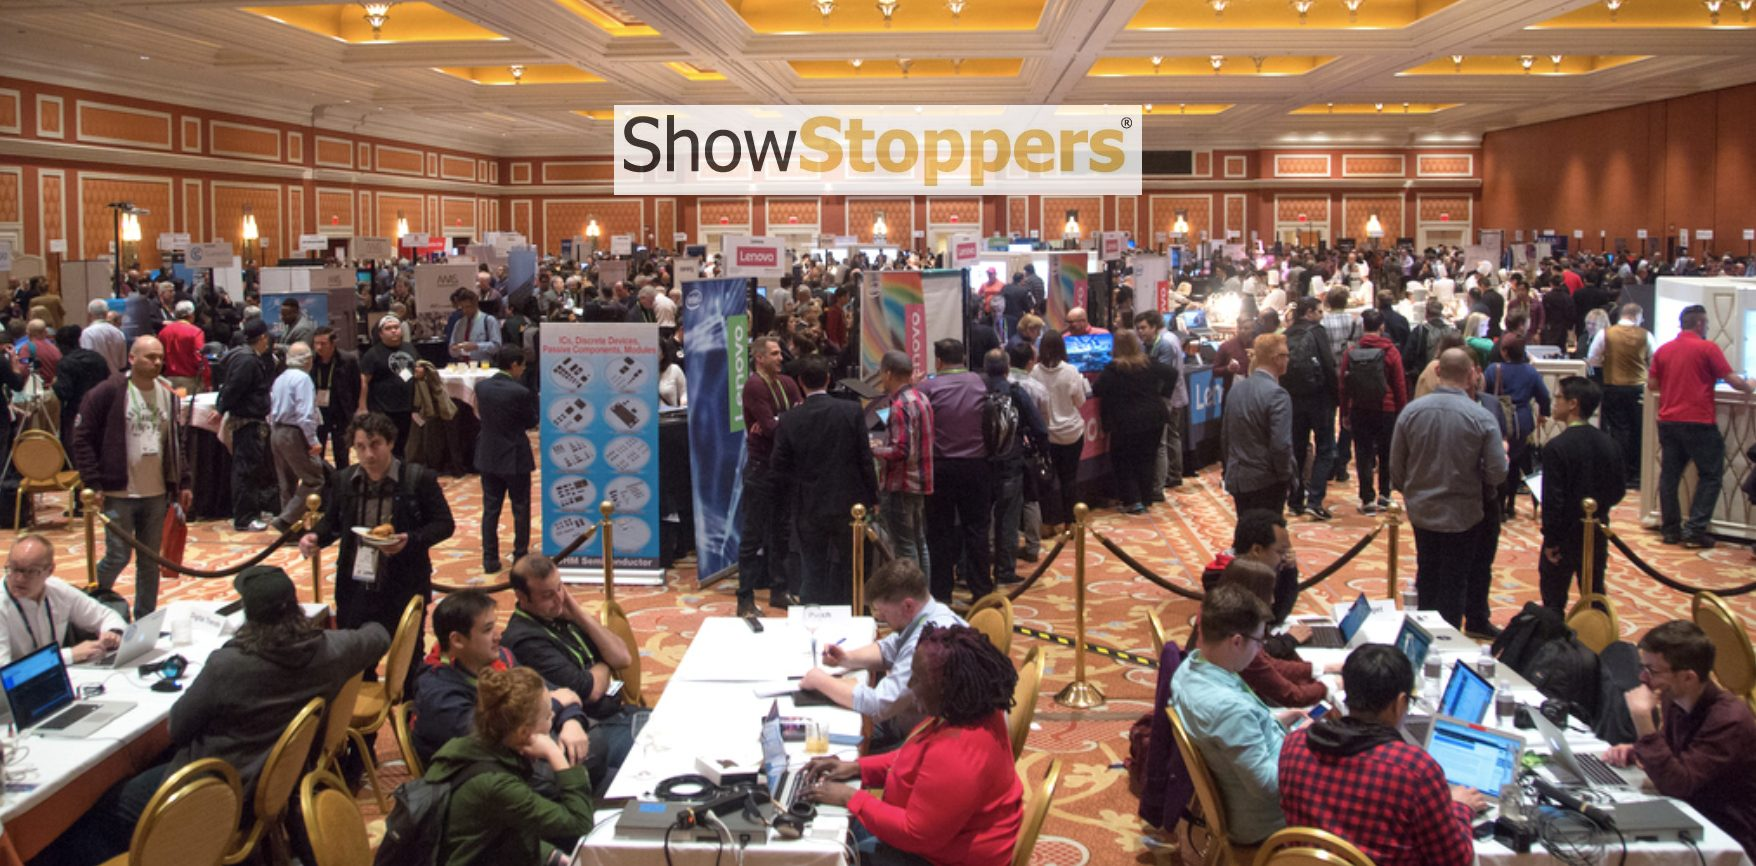 CES 2019: ShowStoppers Demos Smart Ovens, Big Batteries, and More